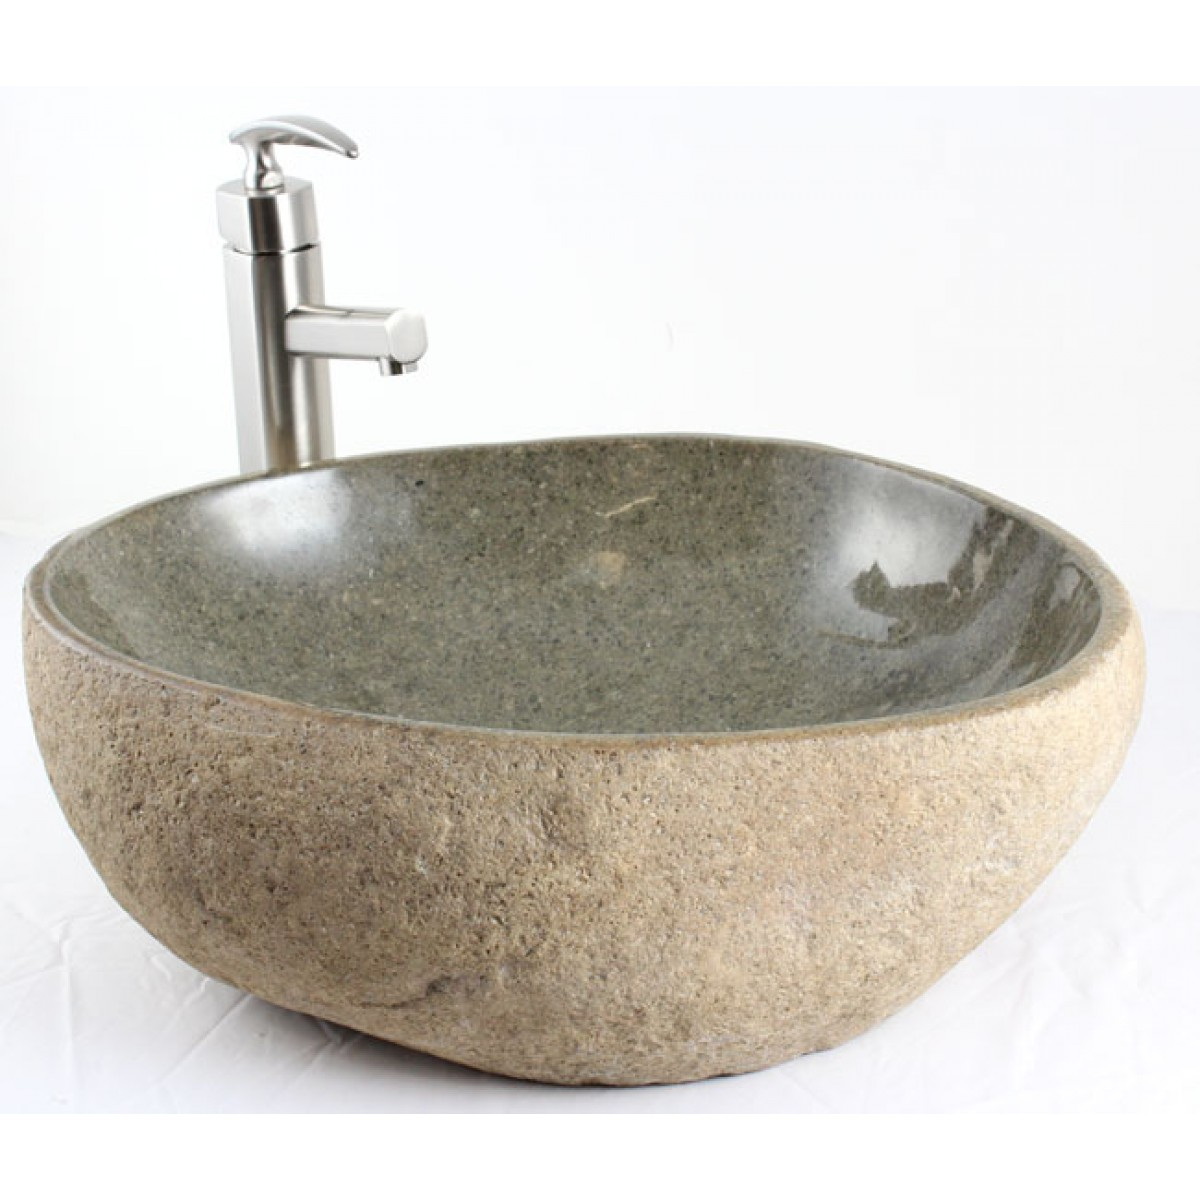 Natural River Rock Stone Bathroom Lavatory Vessel Sink  19 x 16 x 614 Inch